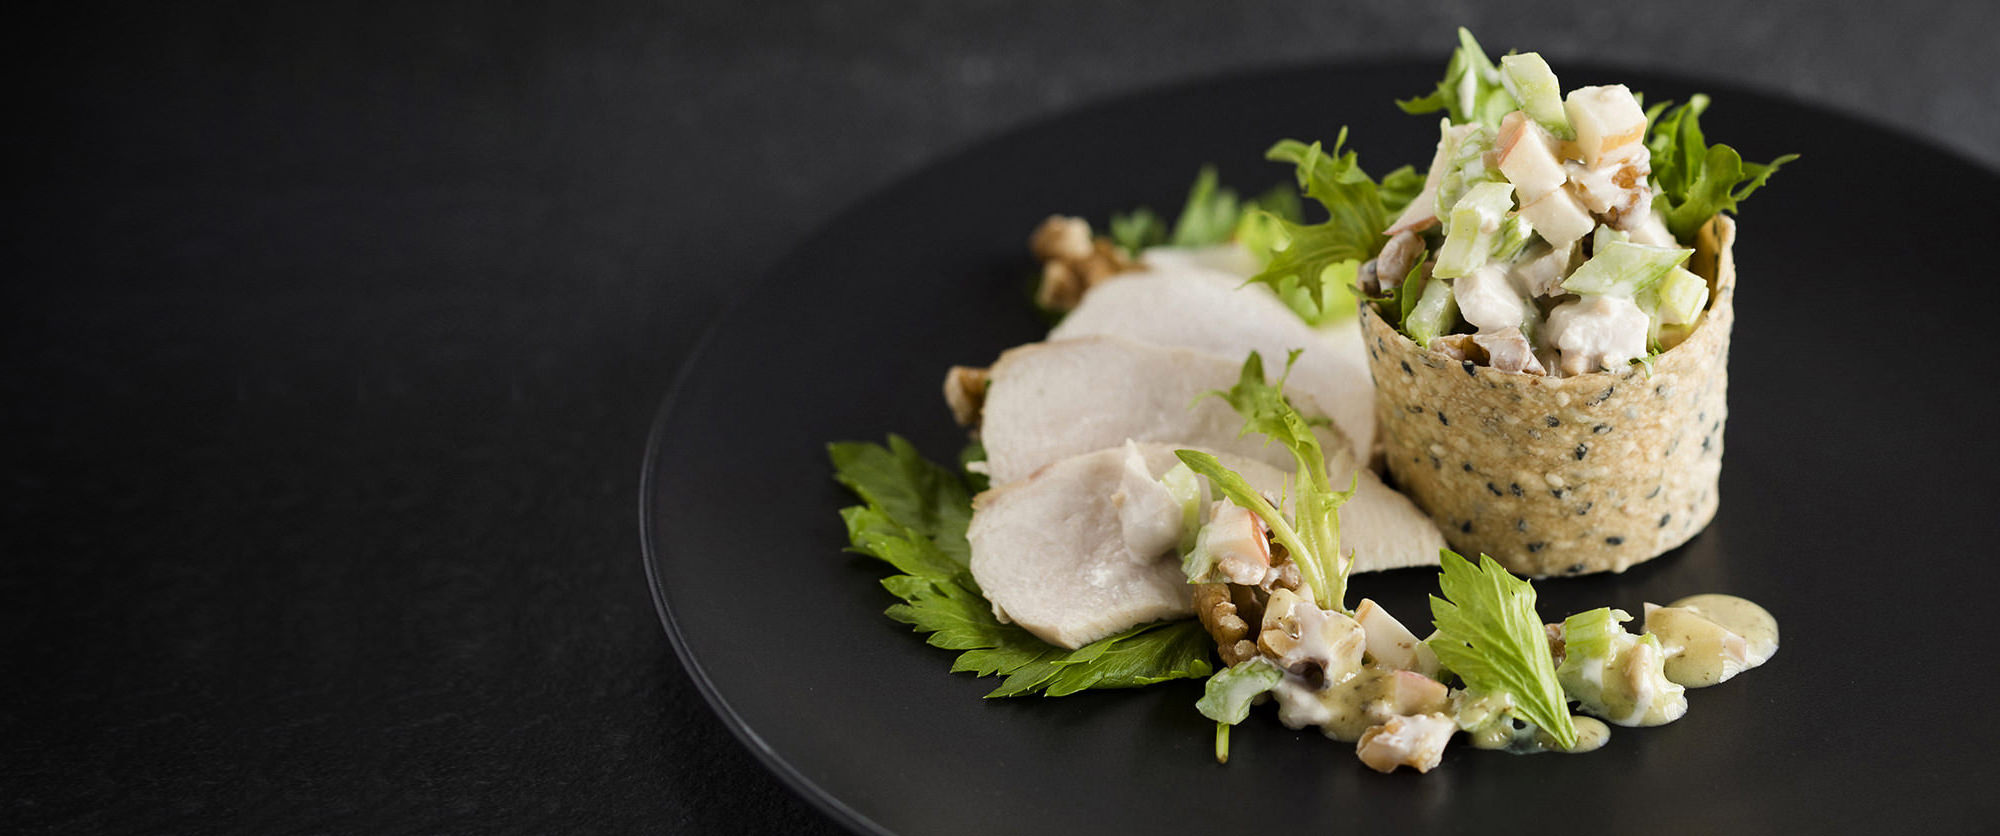 PLated catering perth